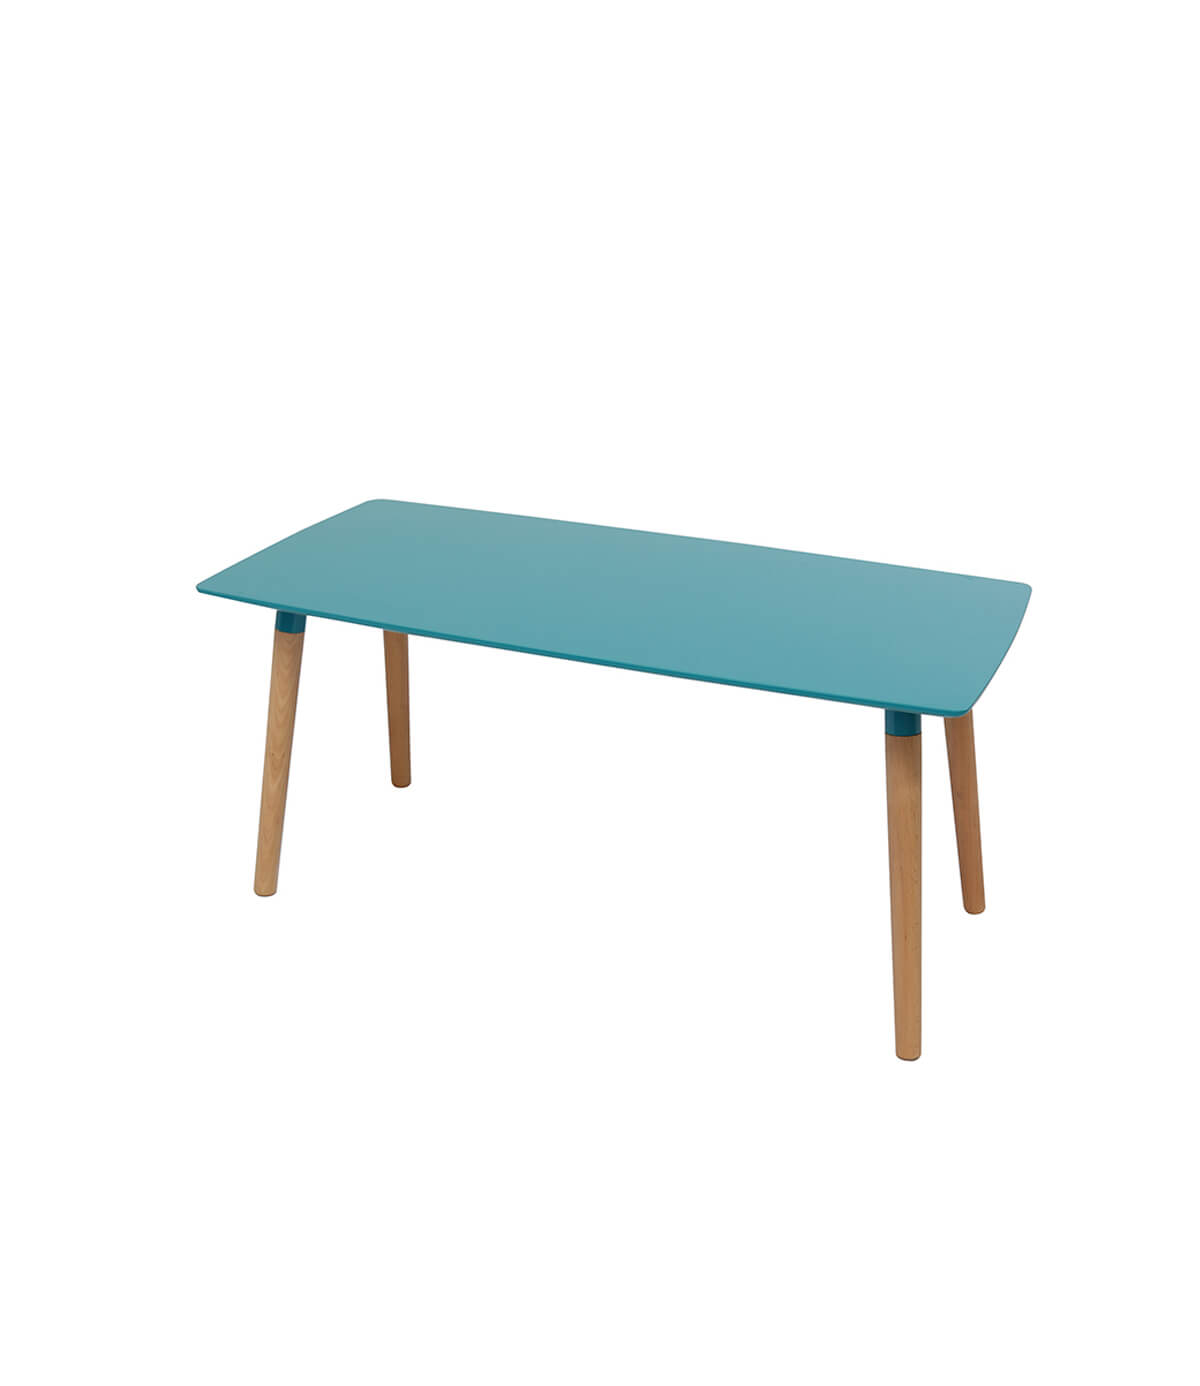 Naples Blue Beech Wooden Coffee Table Manchester Furniture Supplies